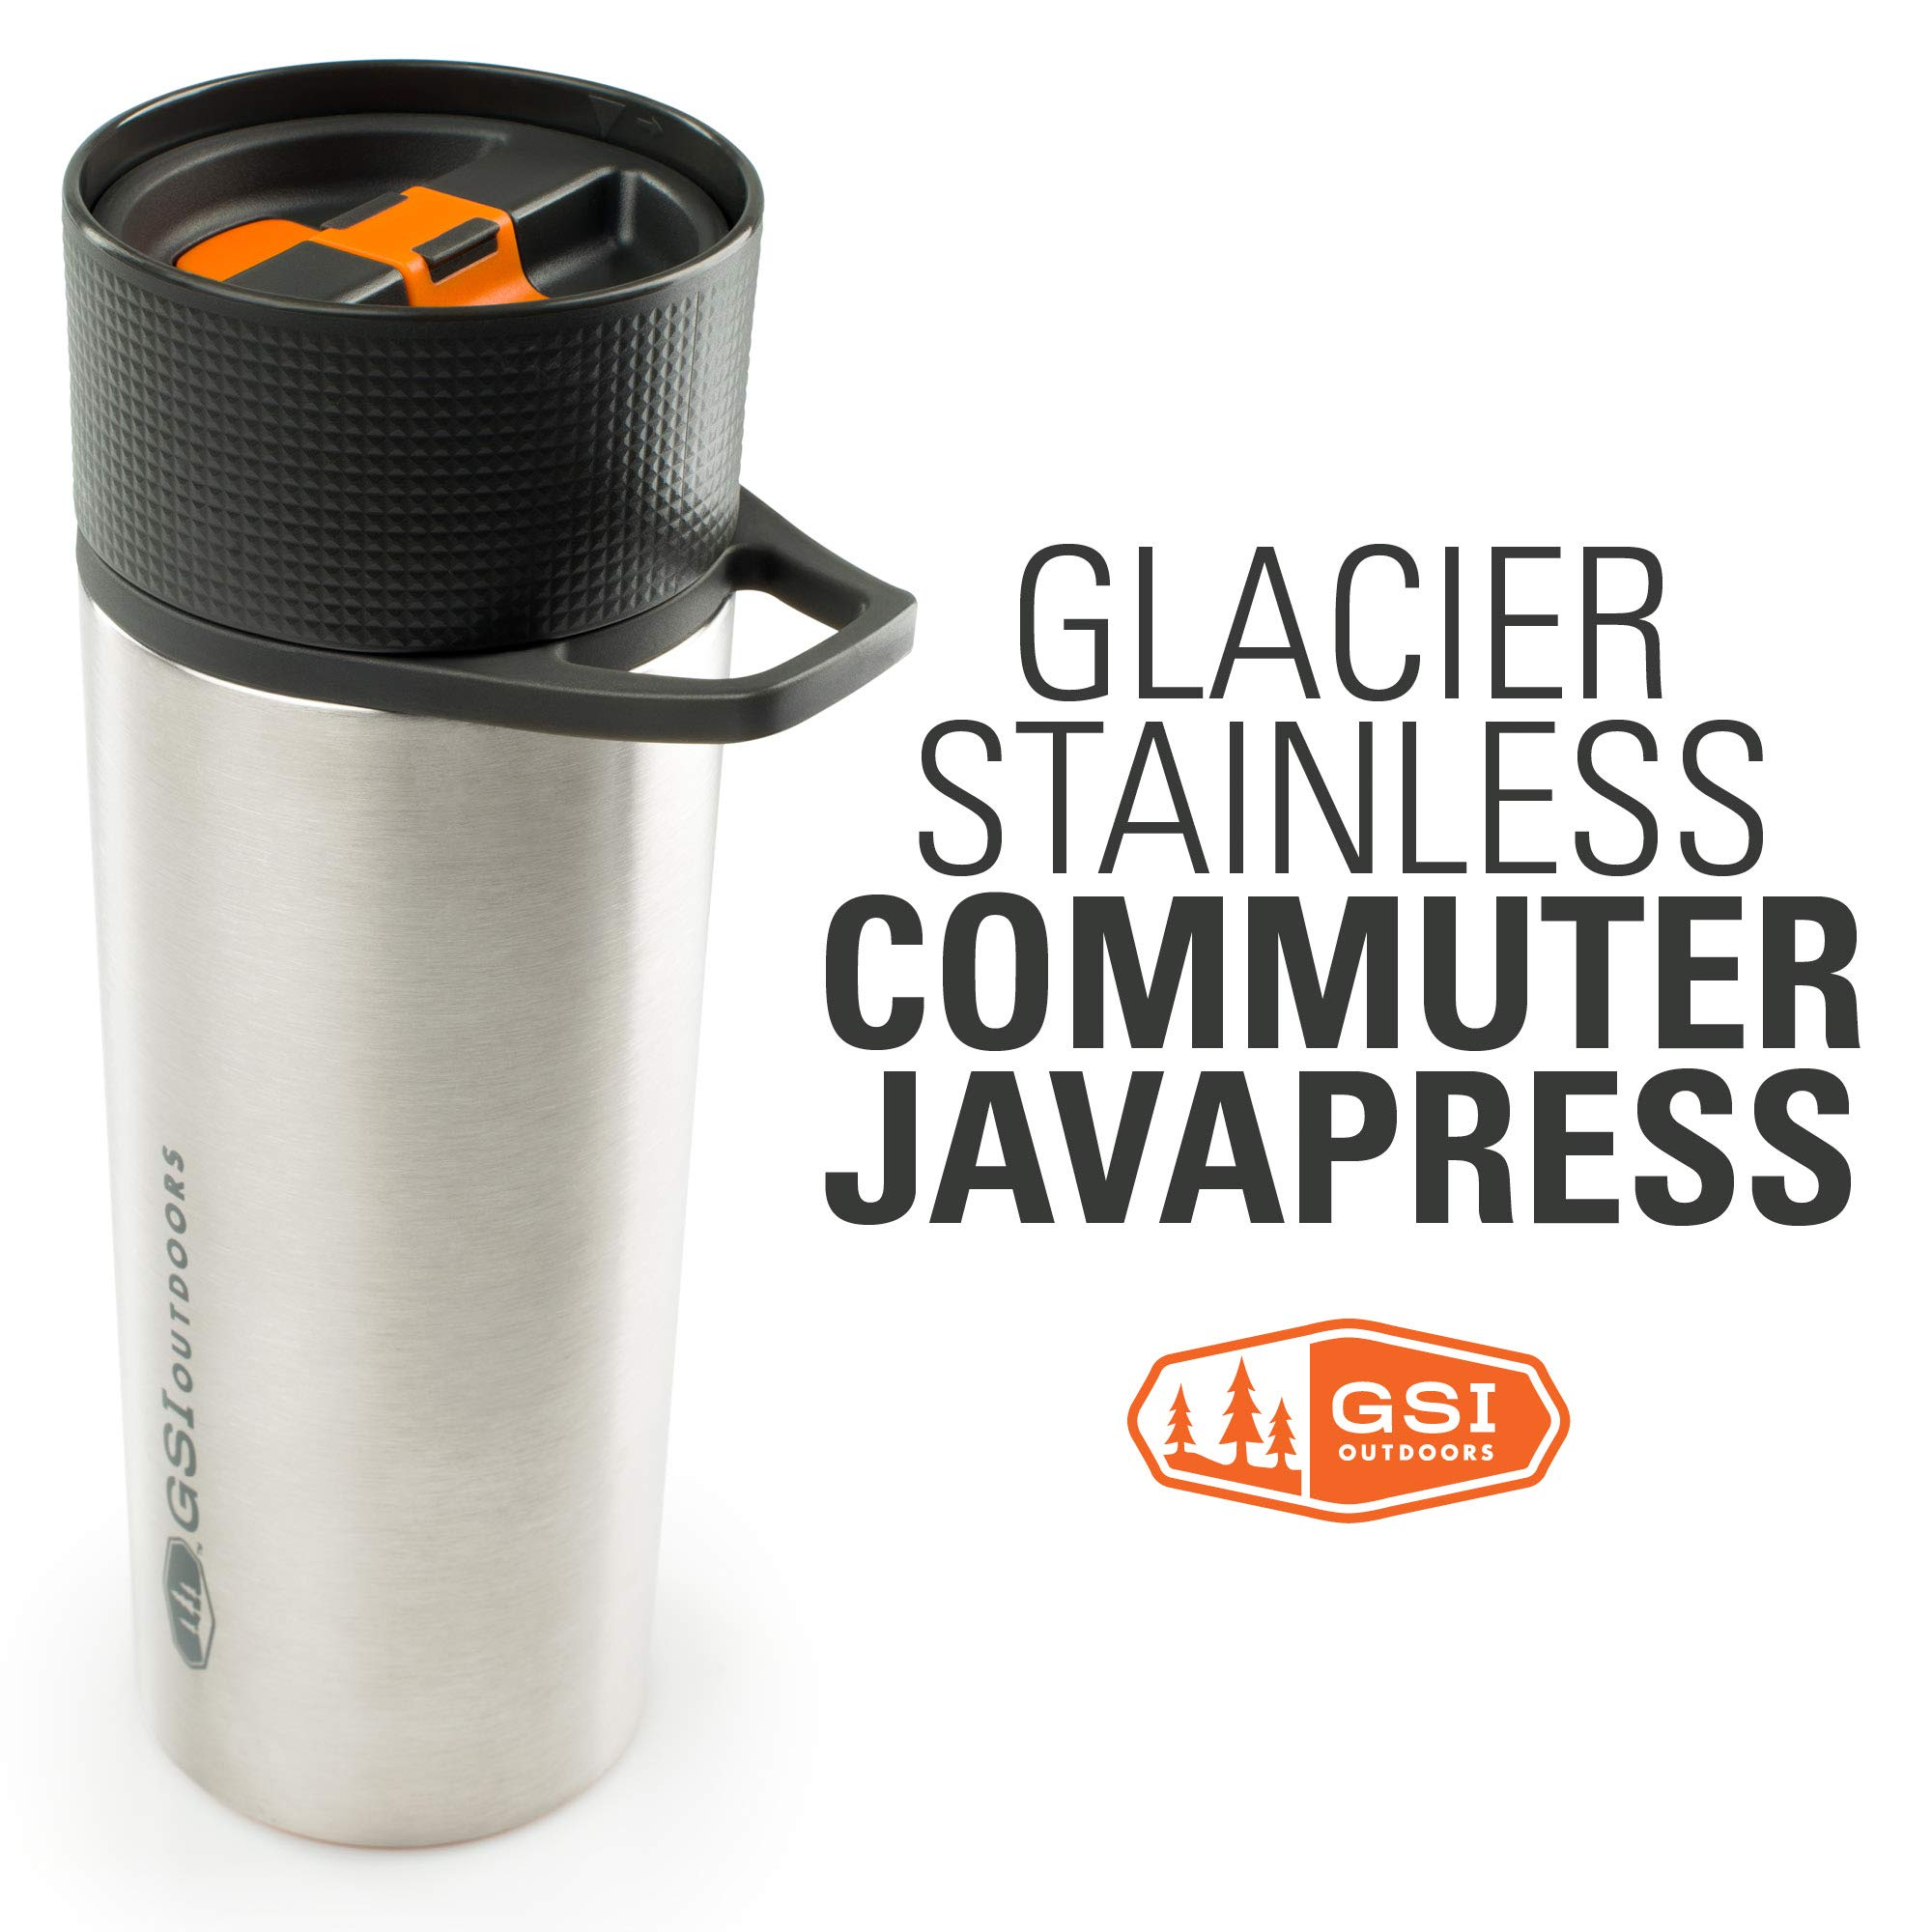 GSI Outdoors - Glacier Stainless Commuter JavaPress, French Press Coffee Mug, Superior Backcountry Cookware Since 1985, Stainless by GSI Outdoors